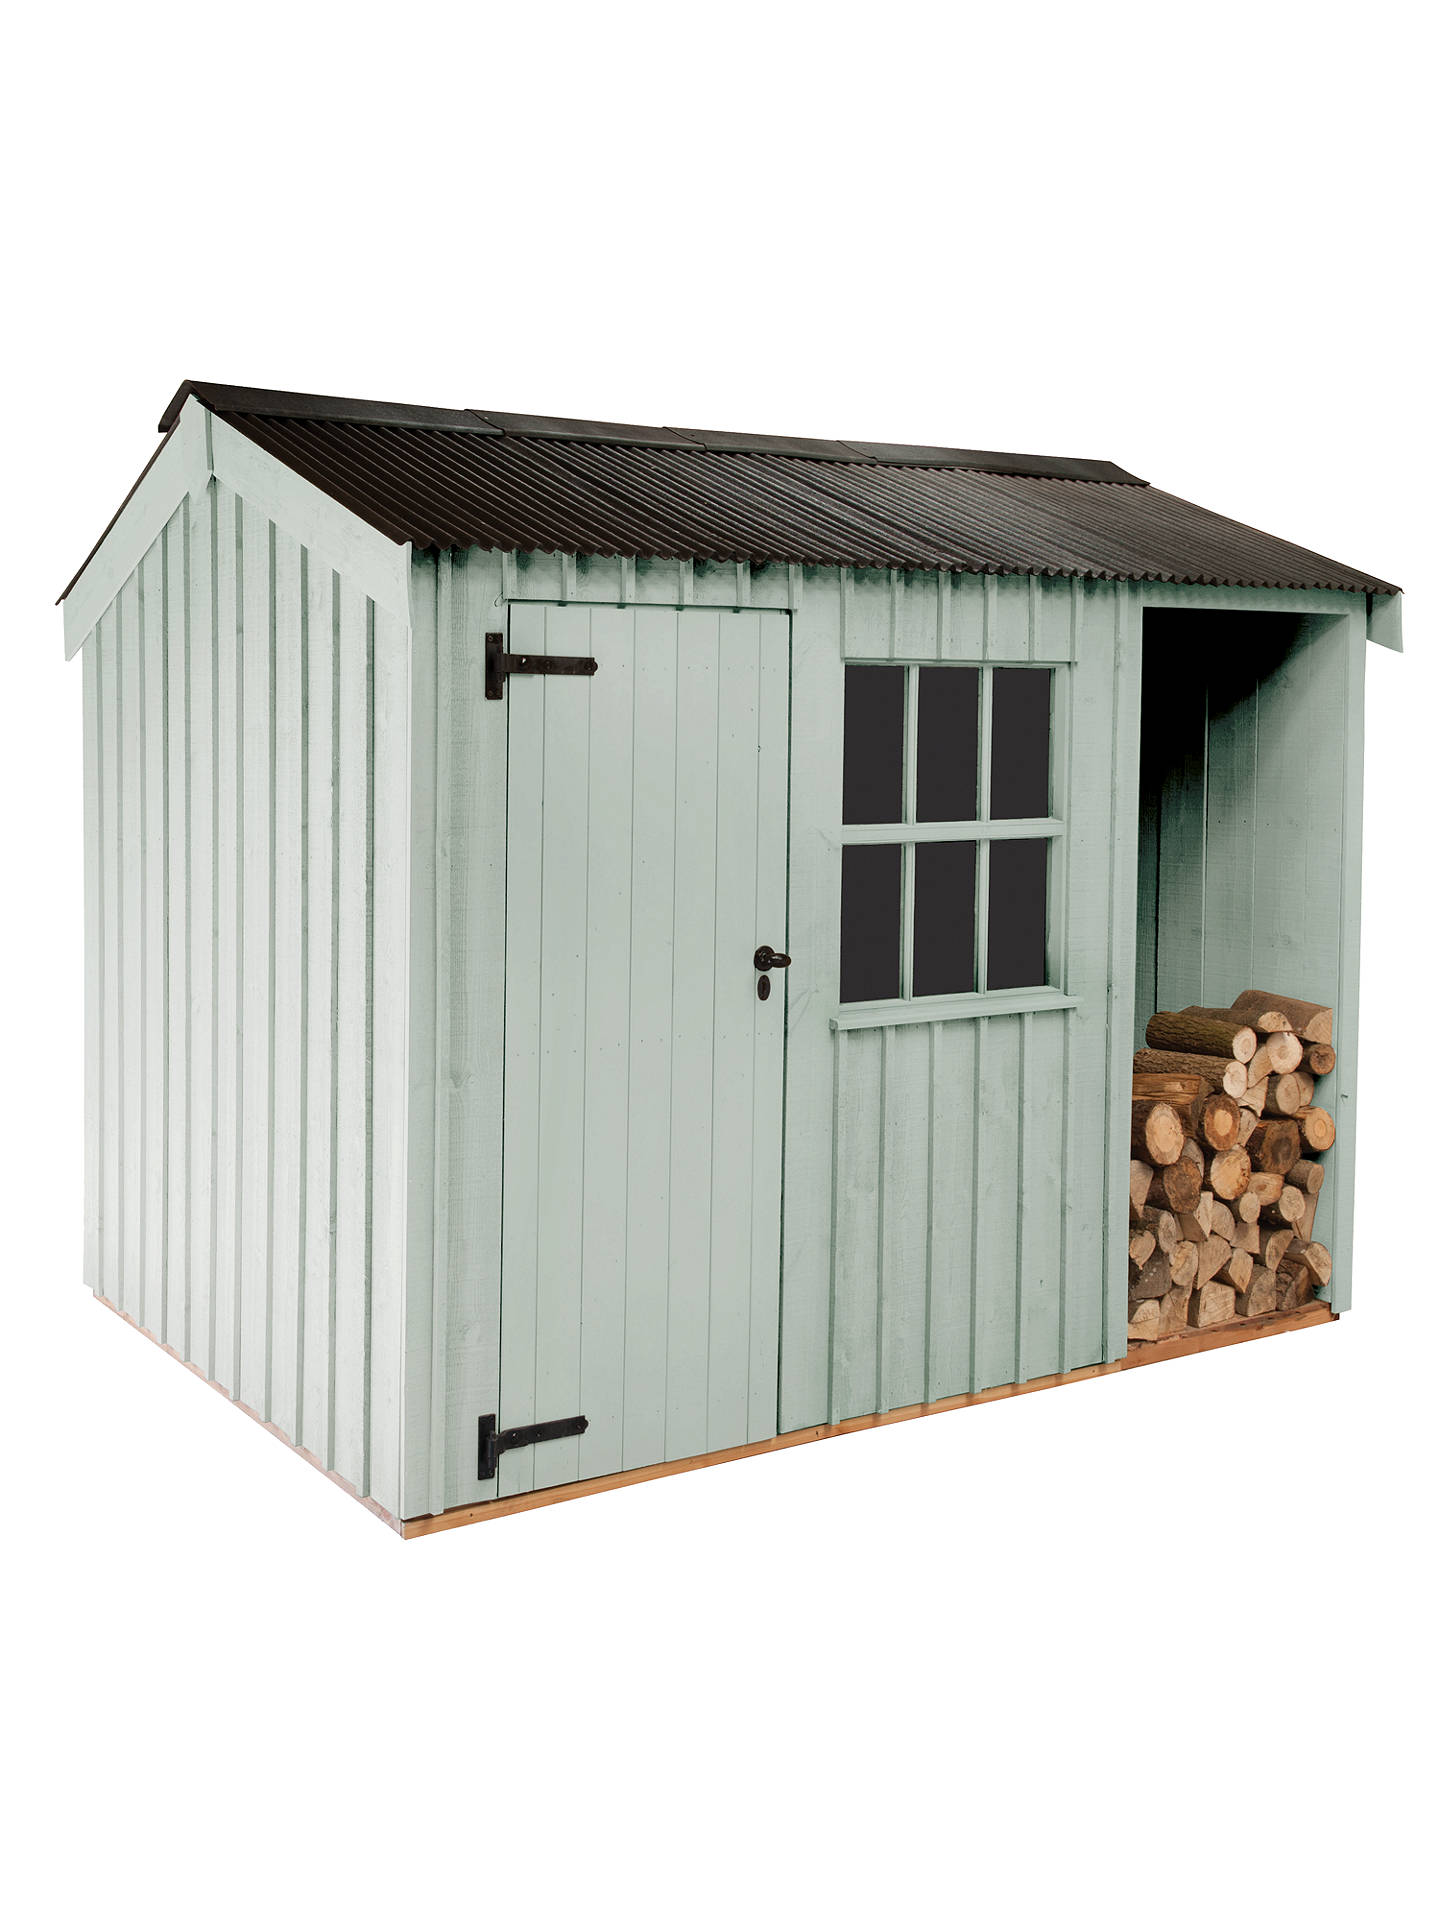 Buy National Trust by Crane Garden Buildings Blickling Garden Shed, 2.4 x 3.6m, FSC-Certified (Scandinavian Redwood), Disraeli Green Online at johnlewis.com